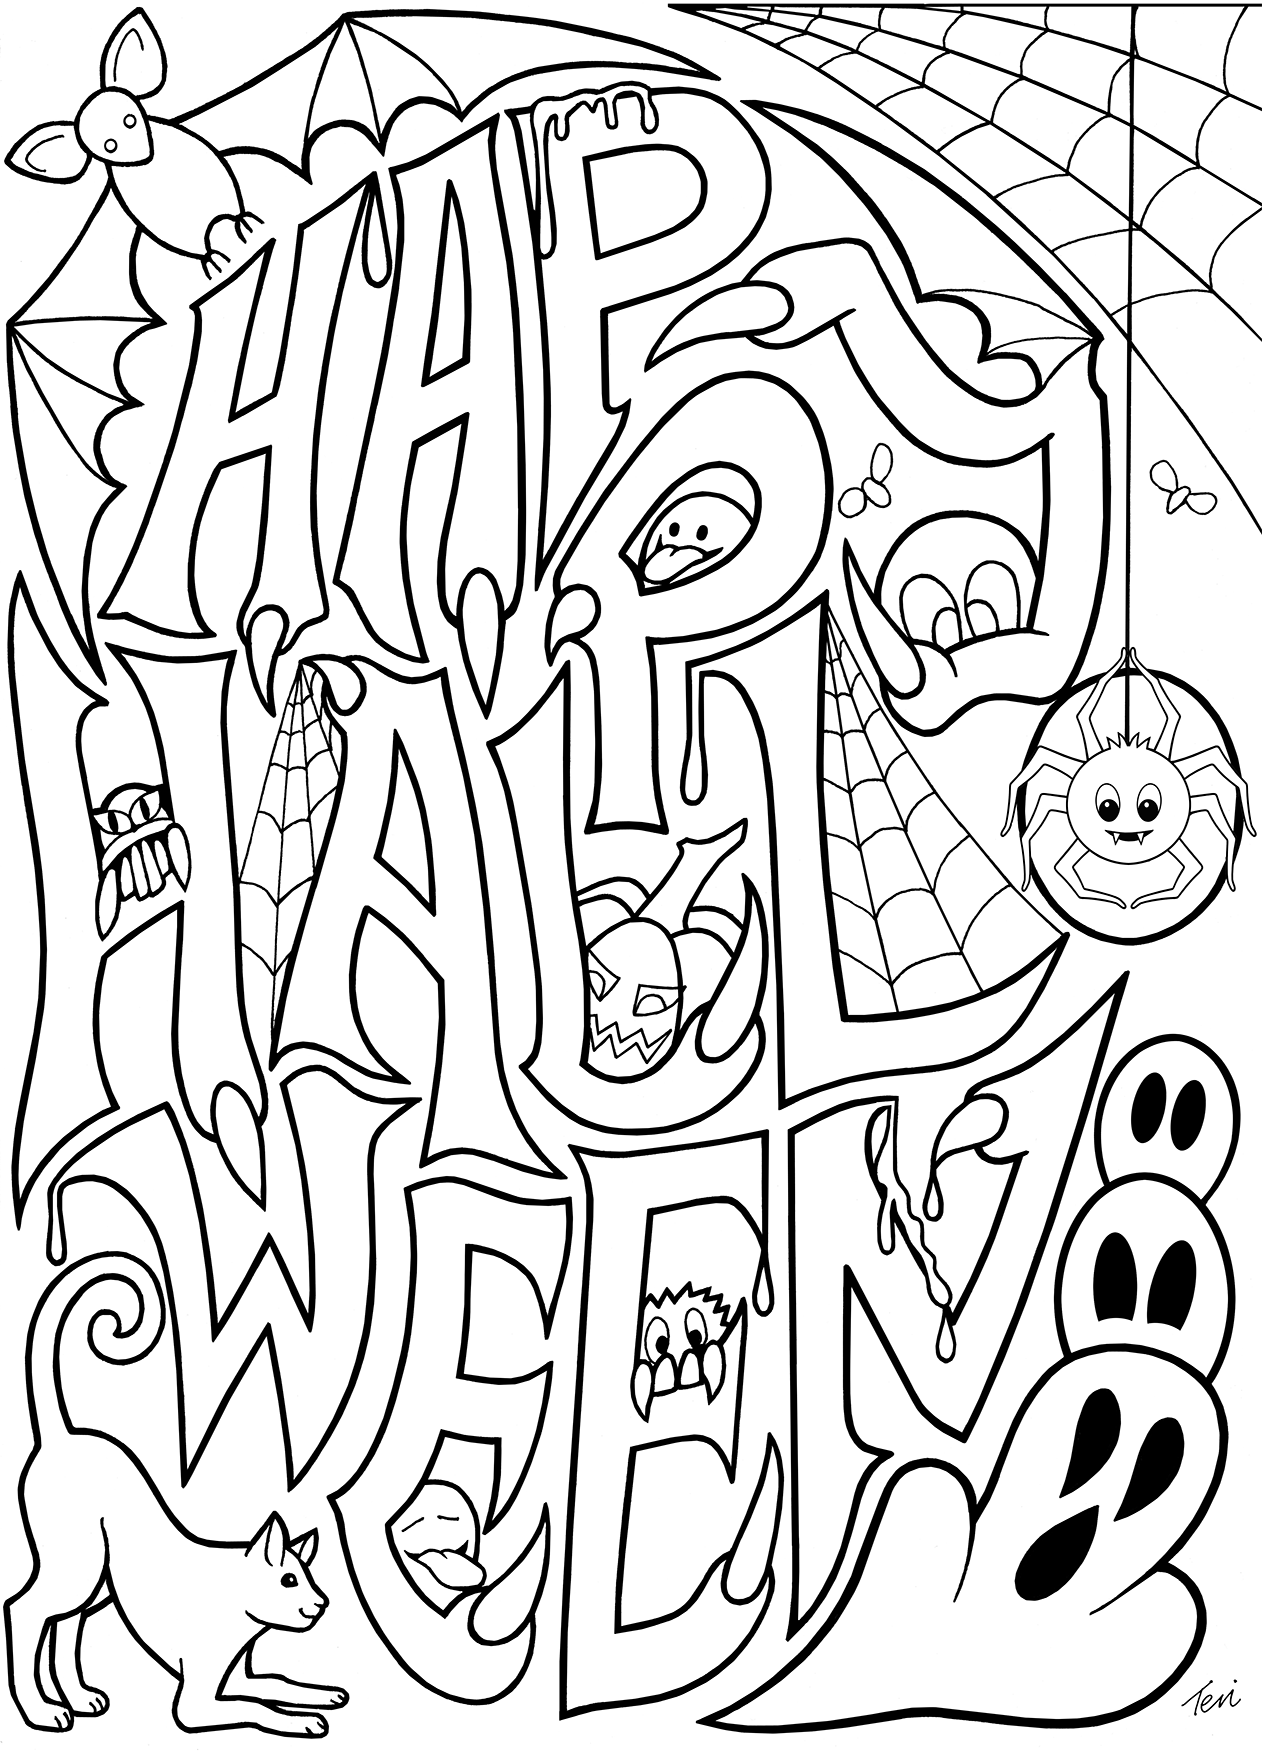 Free Adult Coloring Book Pages #Happy #Halloween by Blue ...